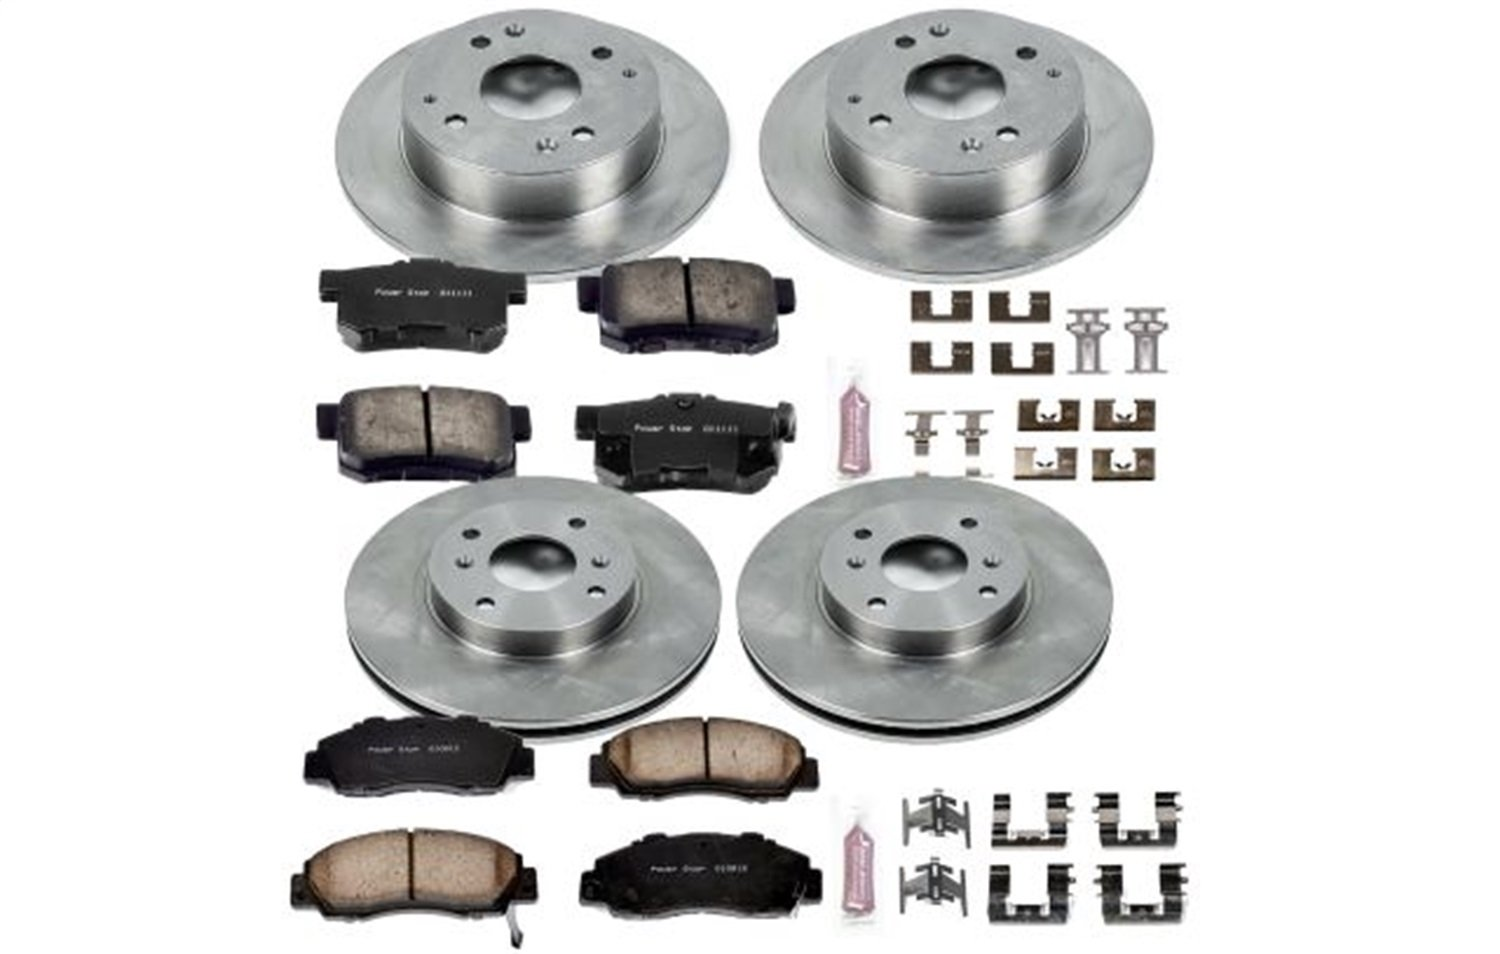 Front//10.21 in Rear OE Replacement Rotors w//Z16 Ceramic Scorched Brake Pads Autospecialty By Power Stop 1-Click Daily Driver Brake Kits Power Stop KOE1238 Autospecialty By Power Stop 1-Click Daily Driver Brake Kits Incl 11.09 in